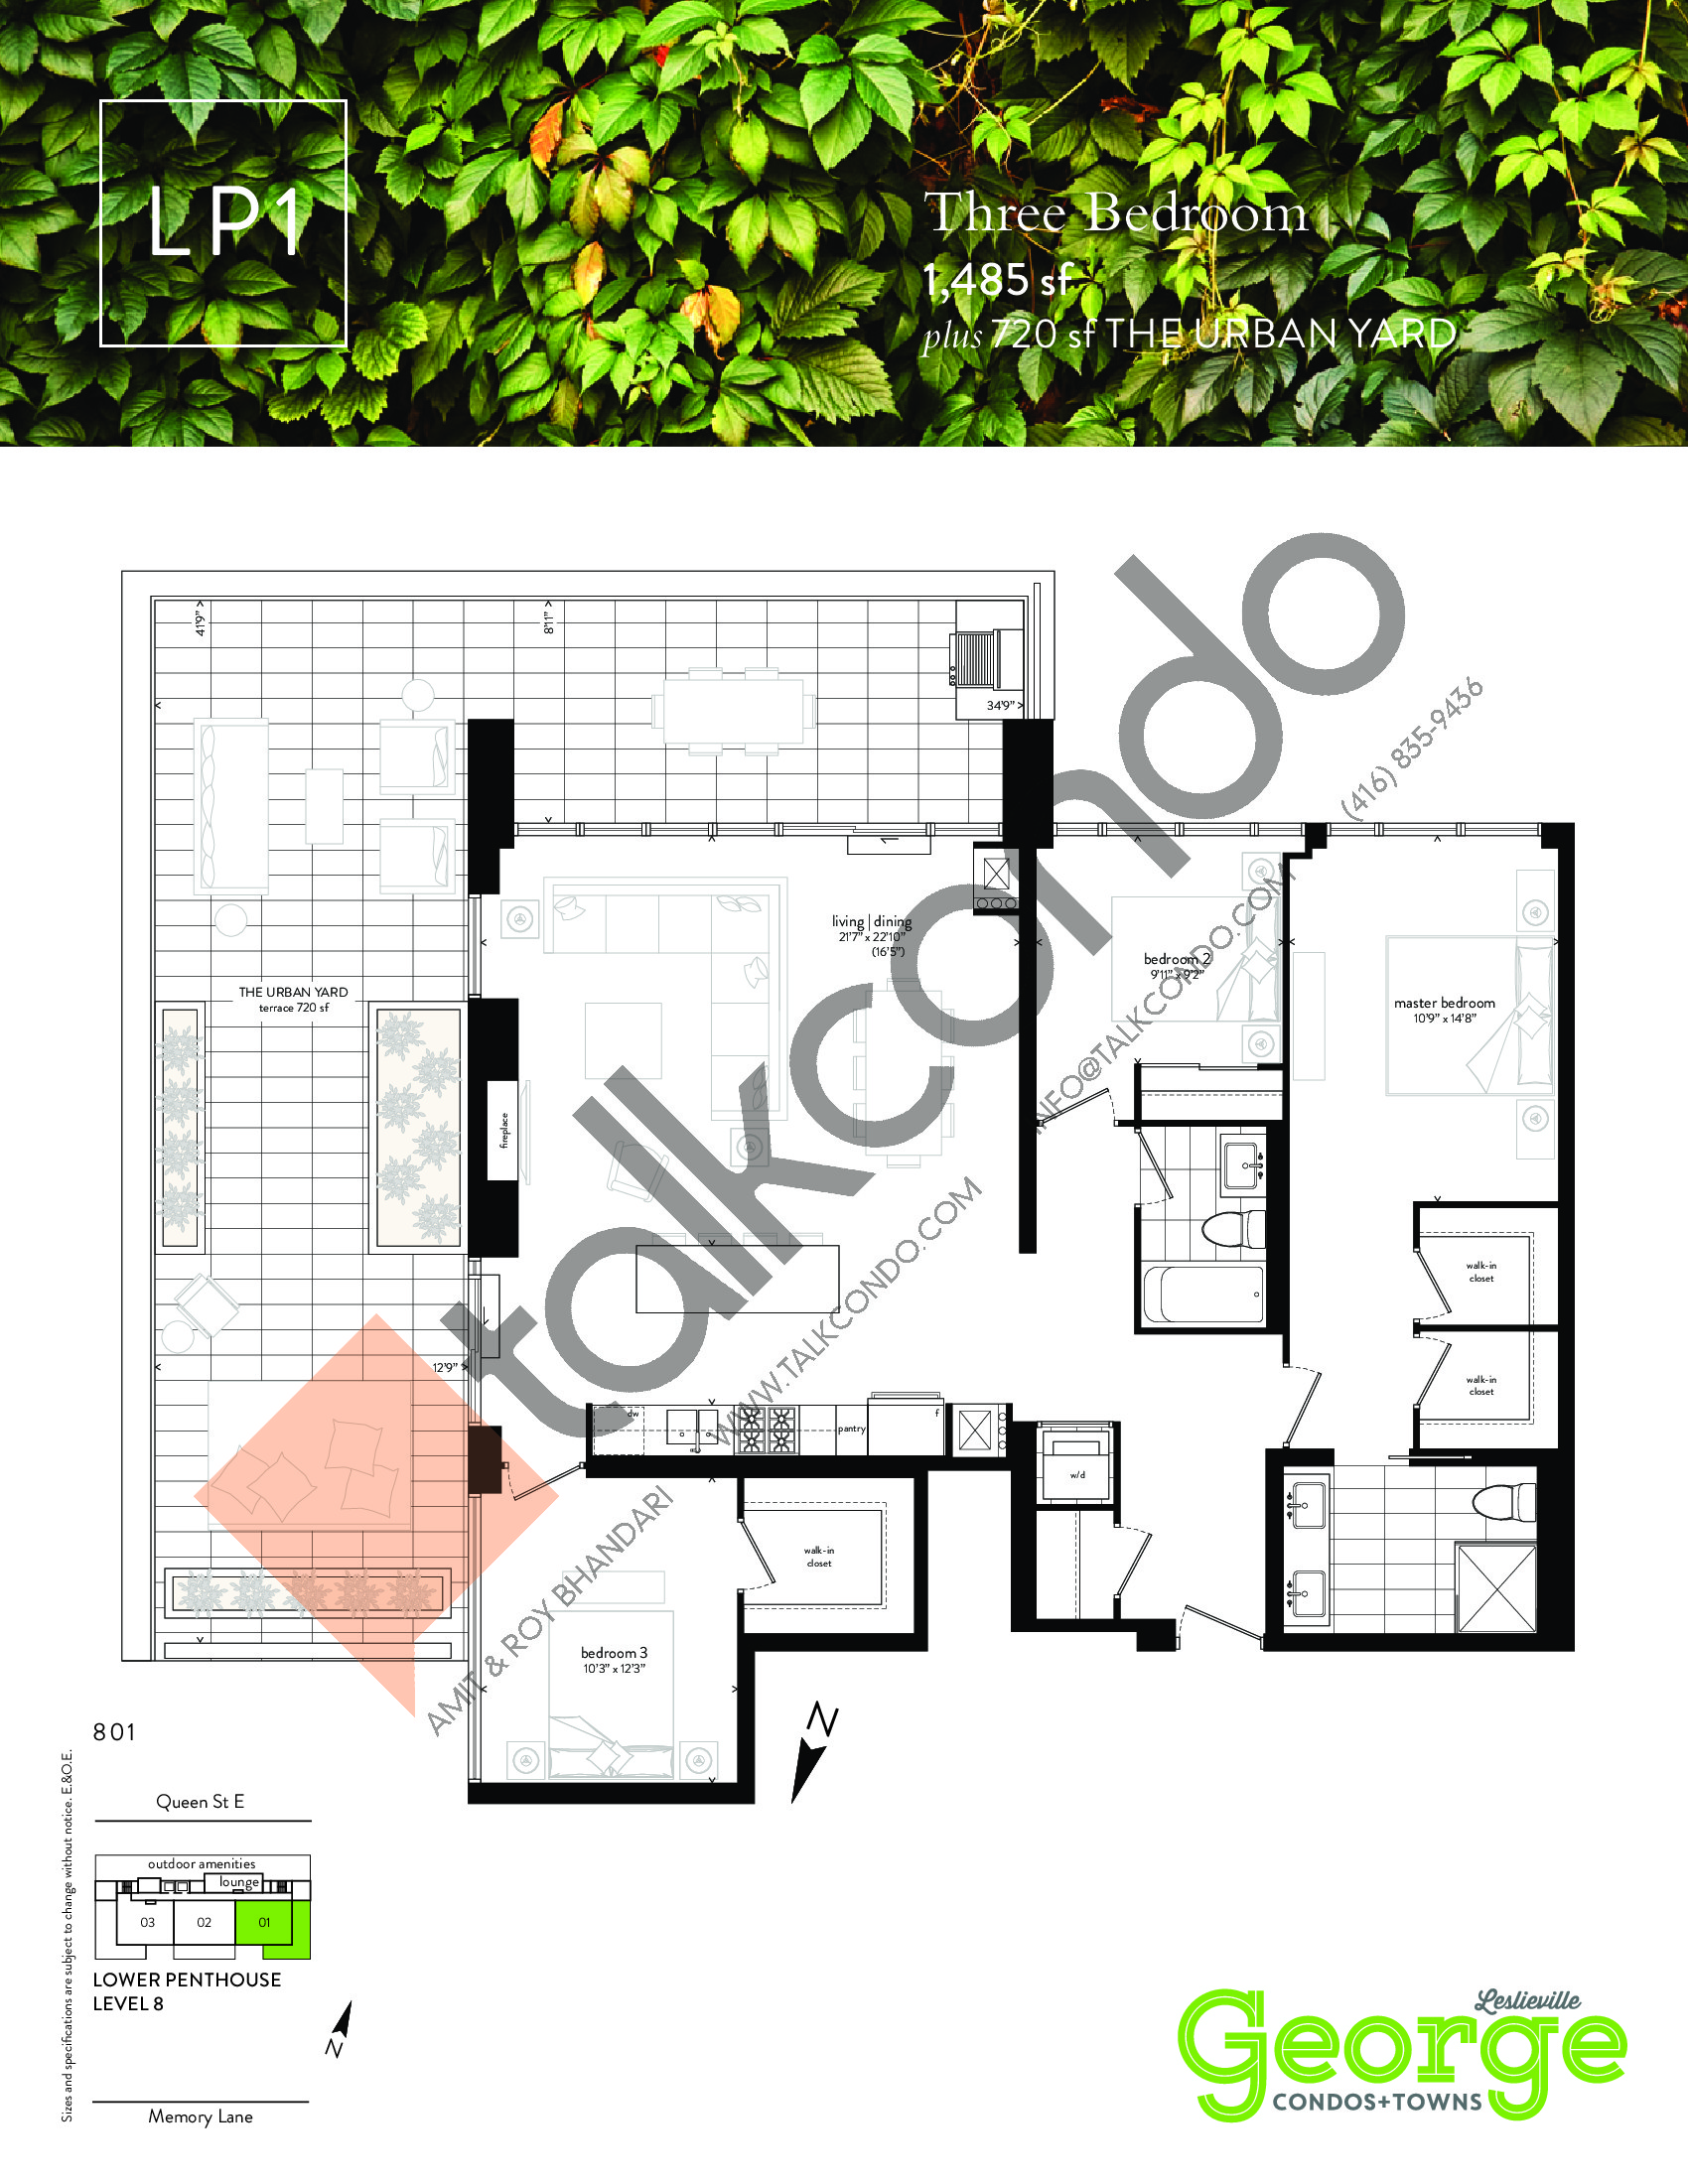 LP1 Floor Plan at George Condos & Towns - 1485 sq.ft